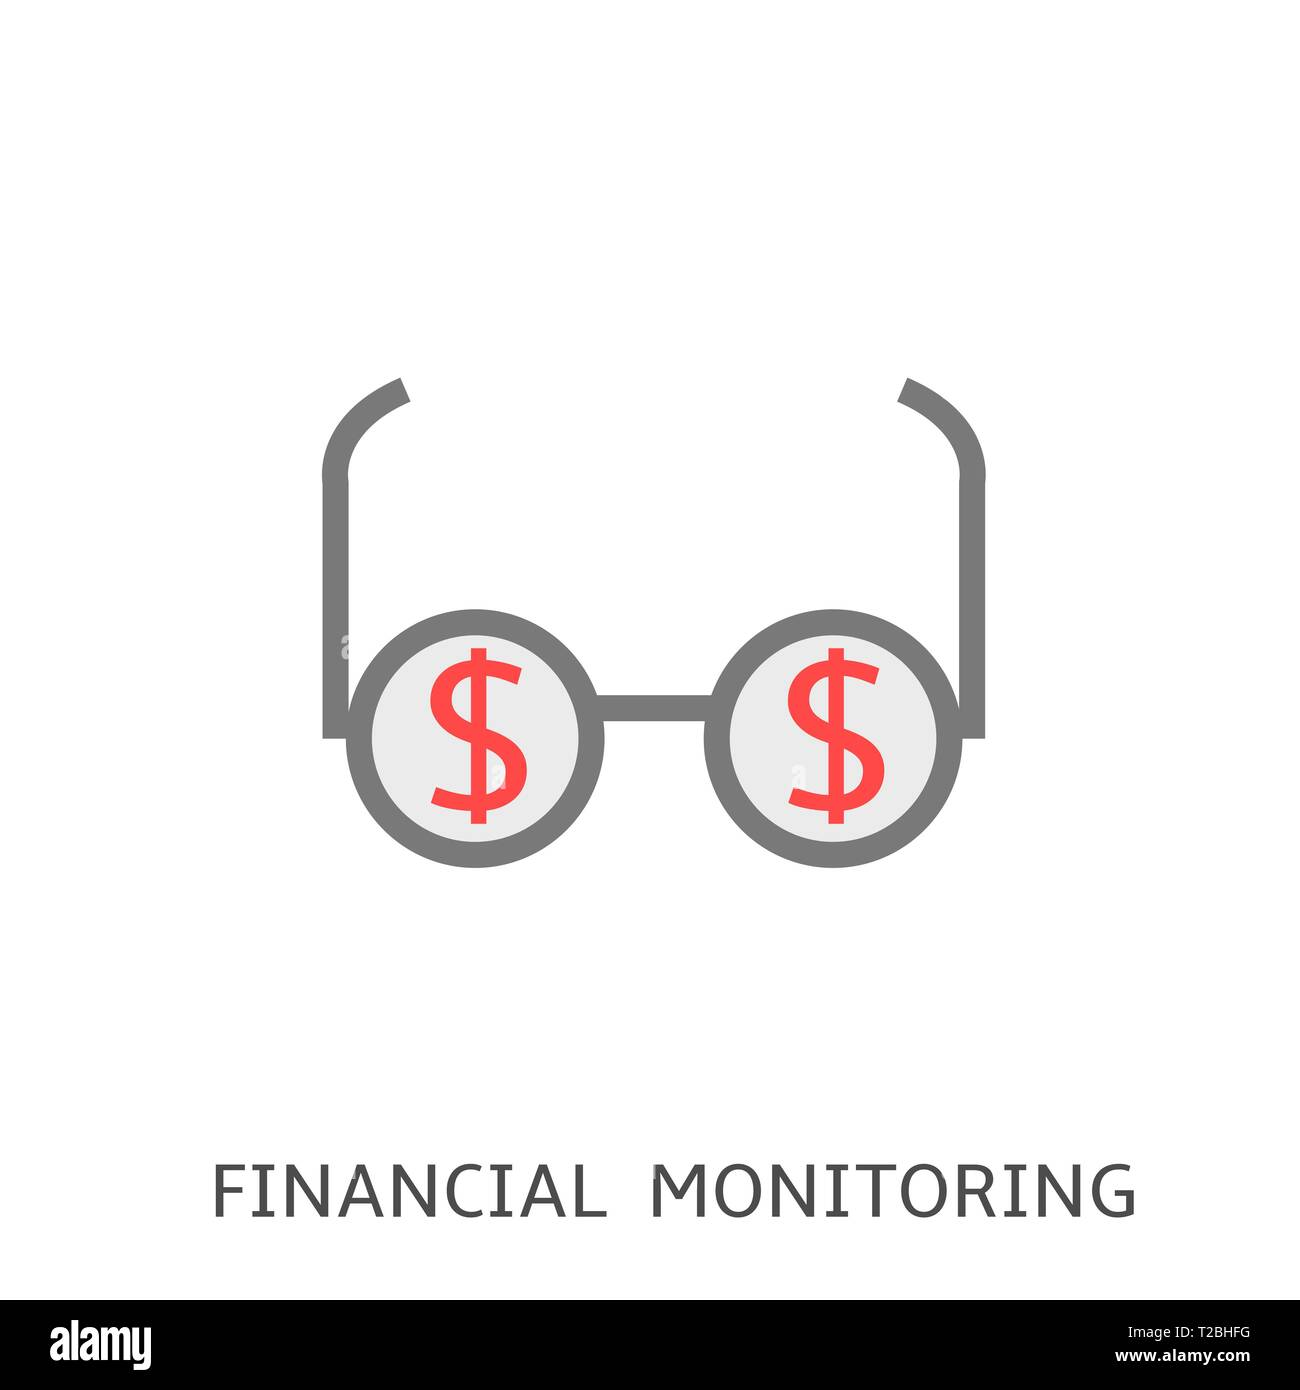 Financial monitoring. Glasses with dollar sings Vector illustration - Stock Vector